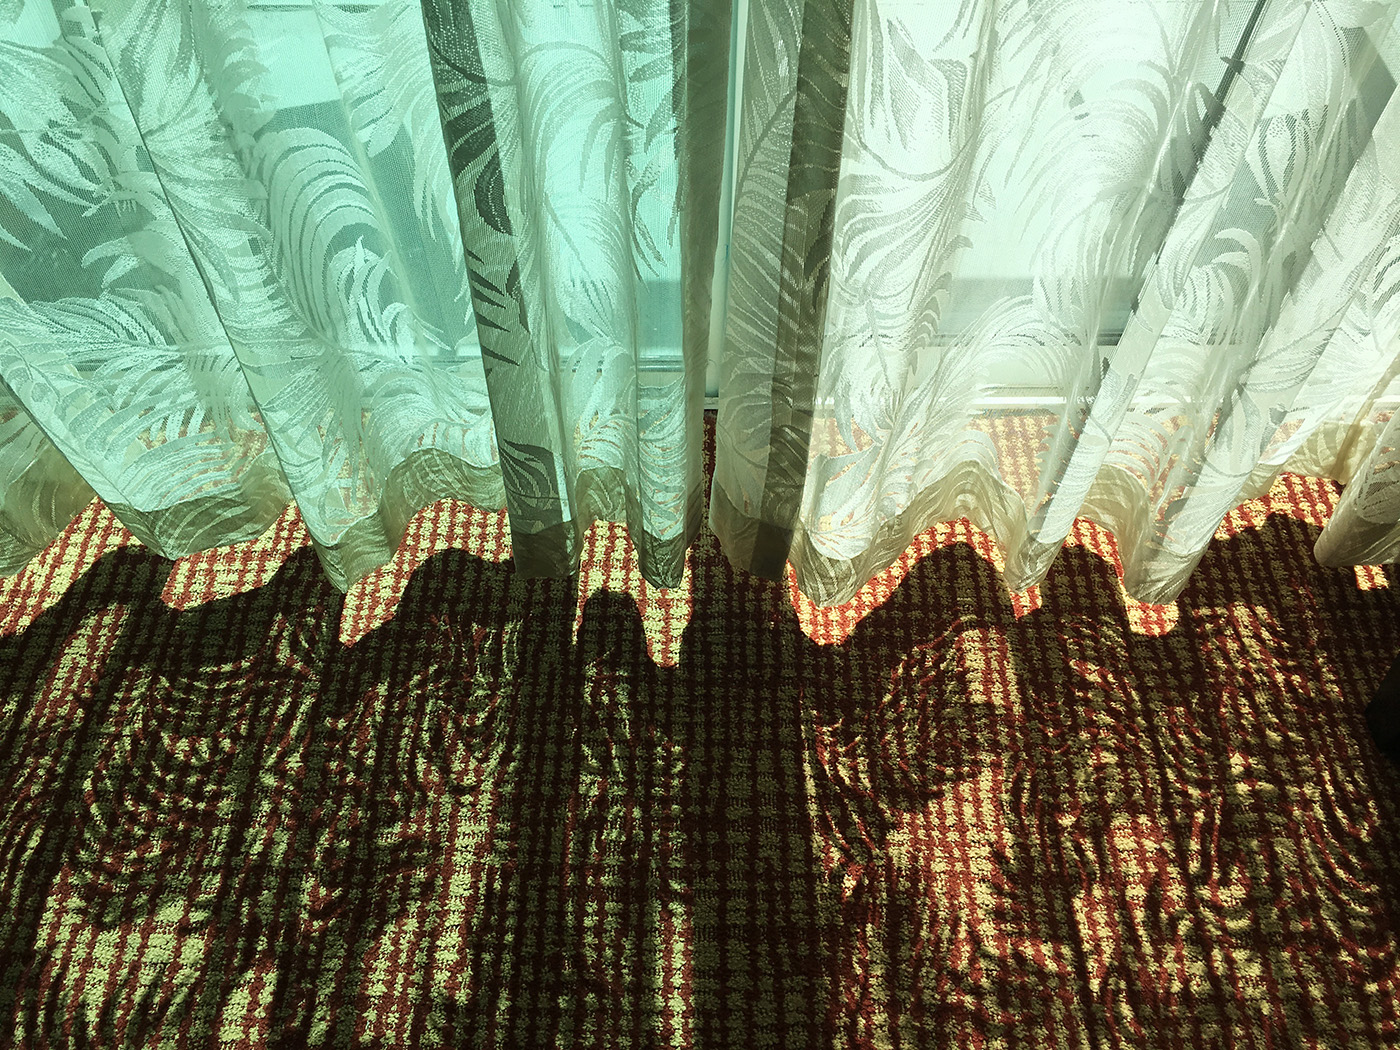 Deborah Farnault, Paris-born French Female Photographer, Lifestyle and Travel Photography, Interiors, Hollywood, Florida, FL, Hotel Room, Miami, Golden Hour, Sunlight, 2019